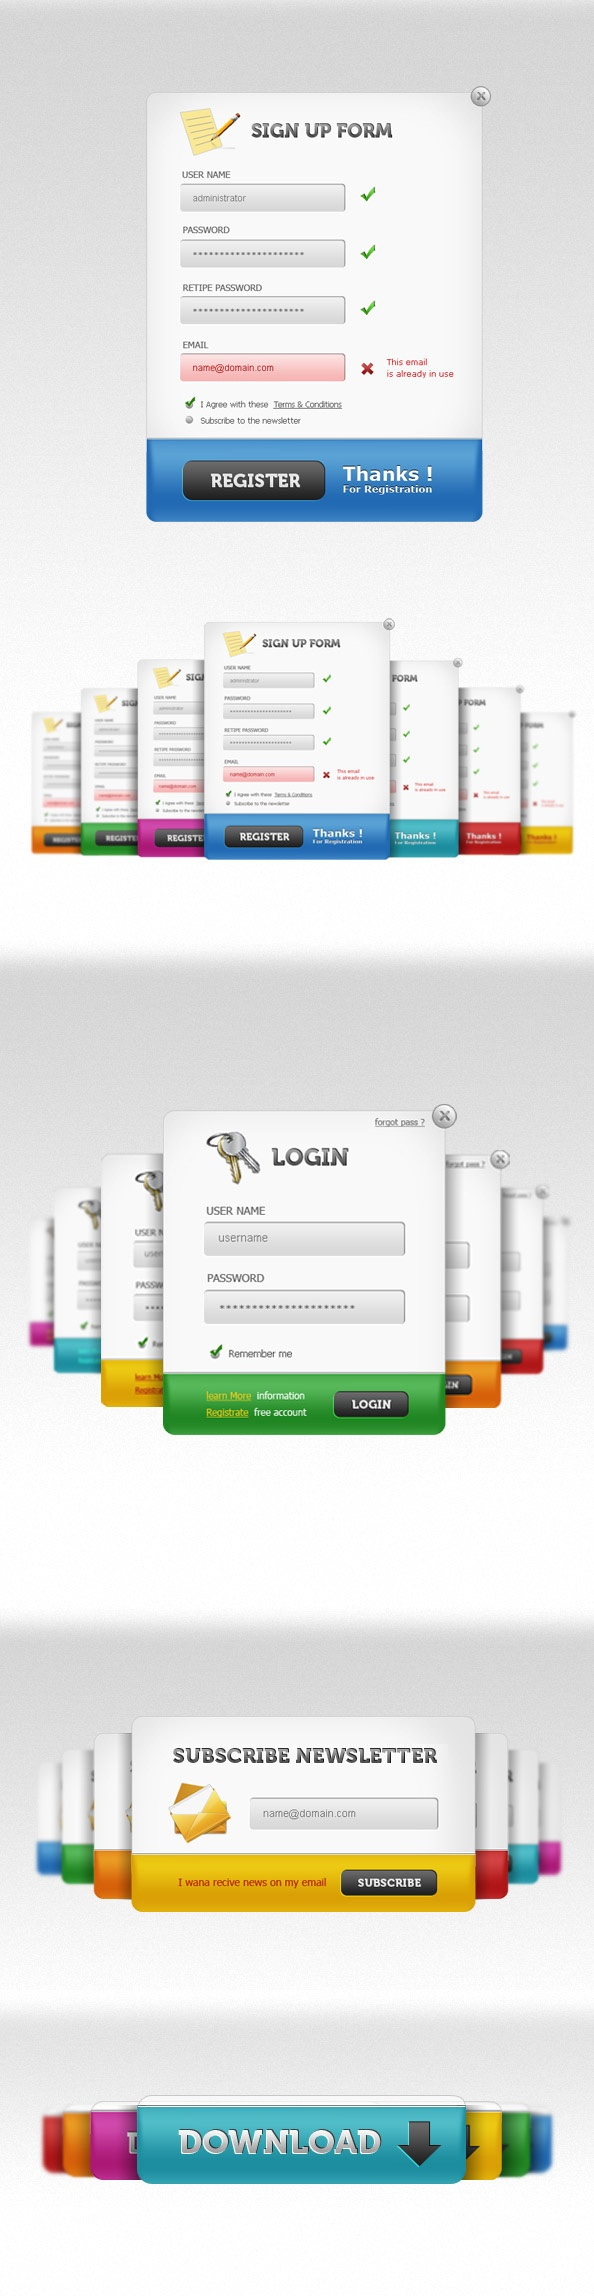 UI PSD Pack – Sign up forms, login panels, subscribe forms + download buttons